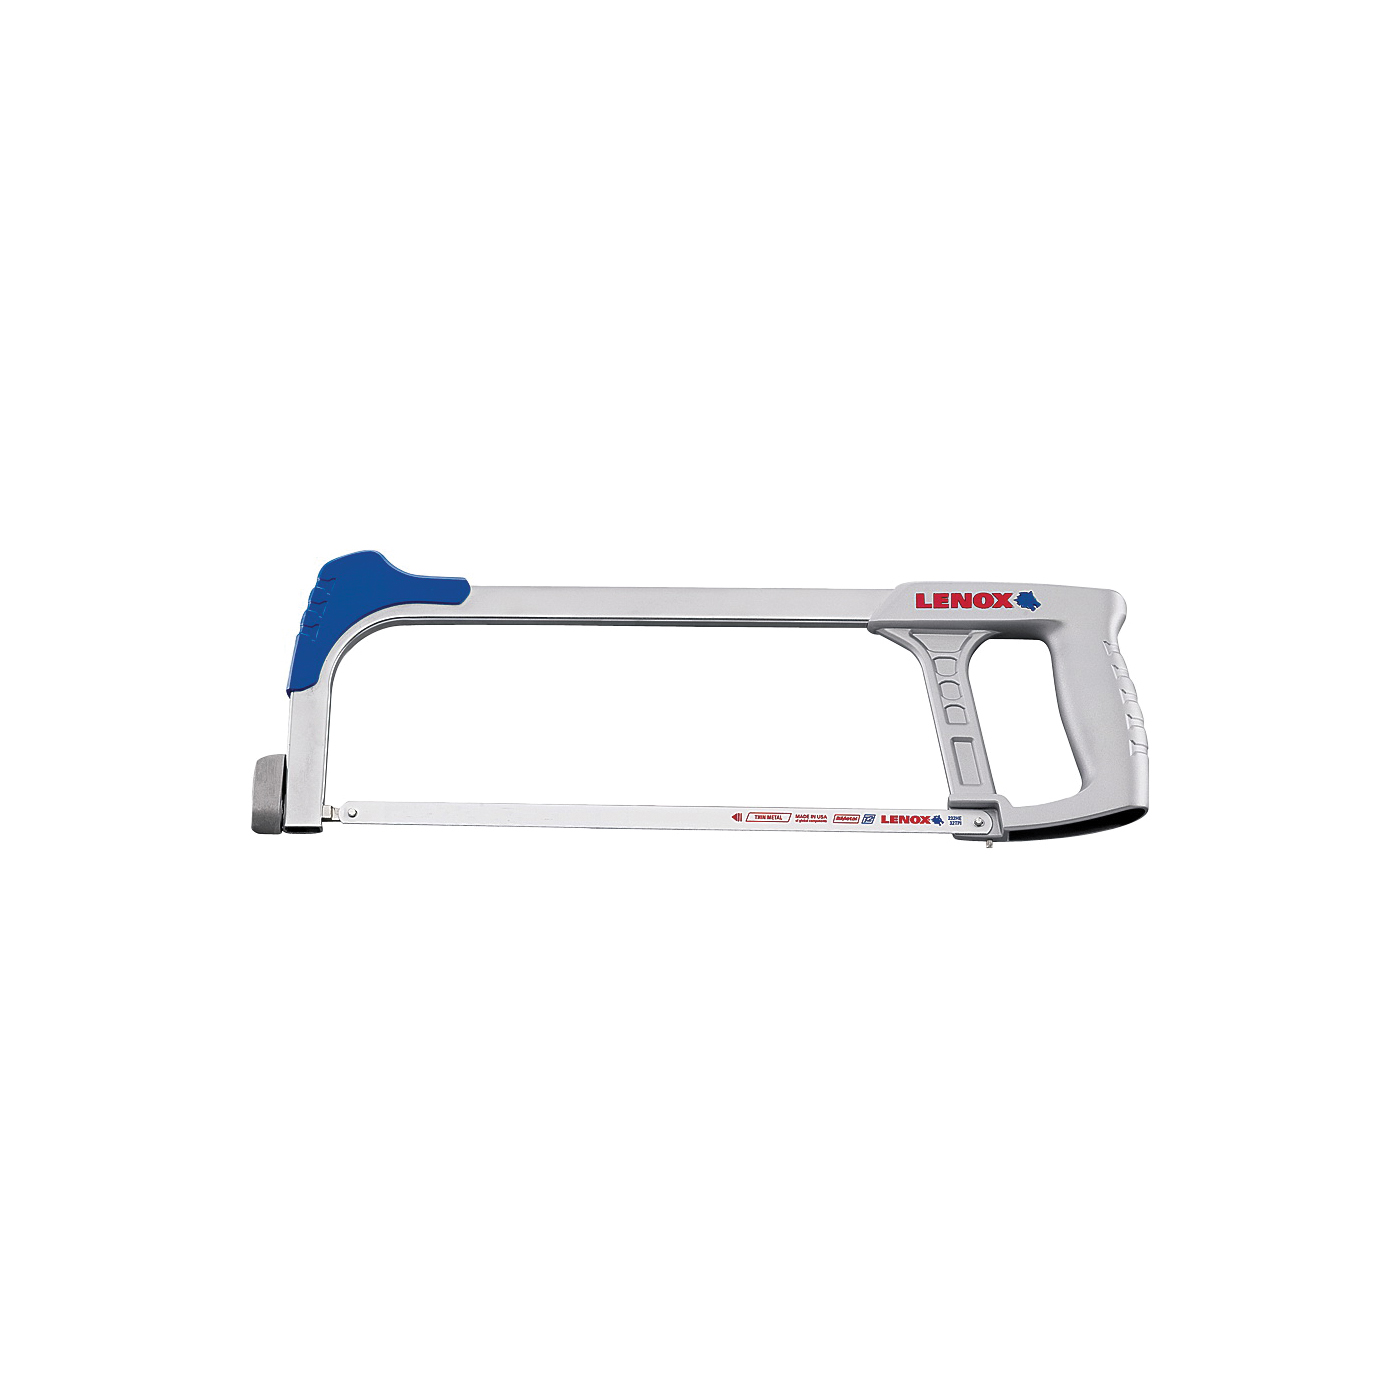 Picture of Lenox 1213188300 Hacksaw Frame, 12 in L Blade, 24 TPI, Steel Blade, 4 in D Throat, Ergonomic Handle, Zinc Handle